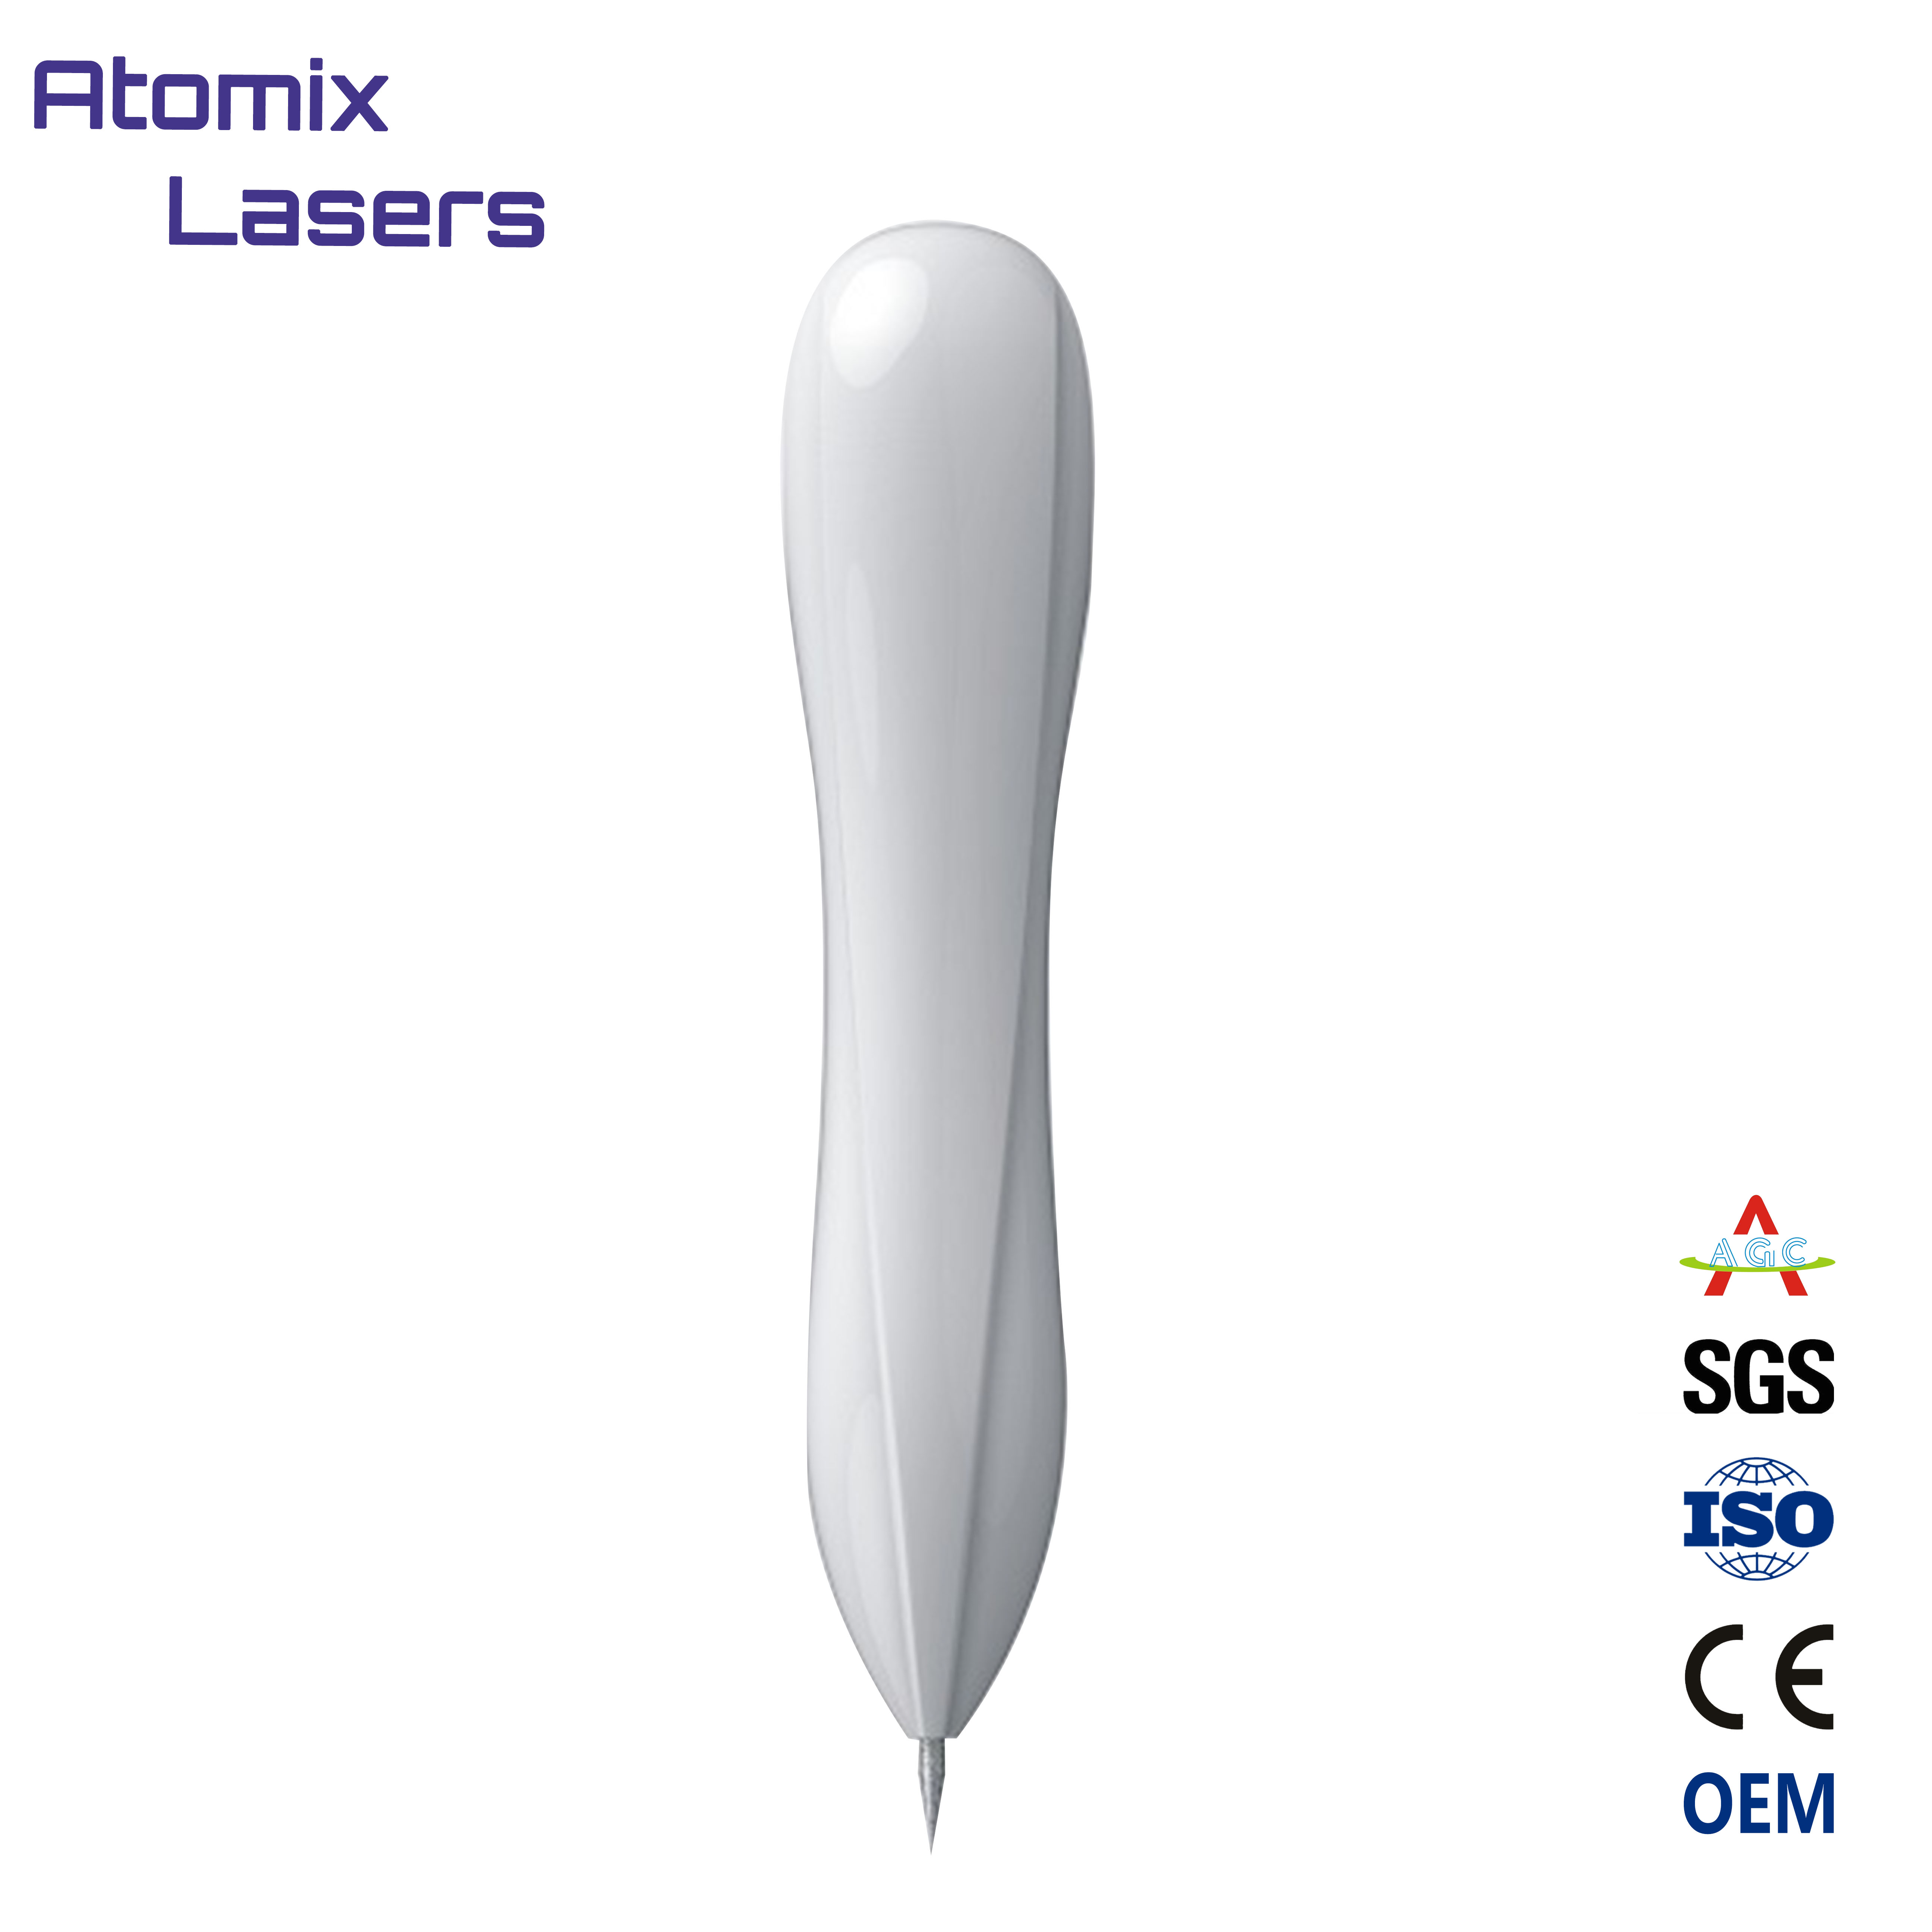 2018 trending products beauty plasma pen for freckle removal pen for dark spot removal best value